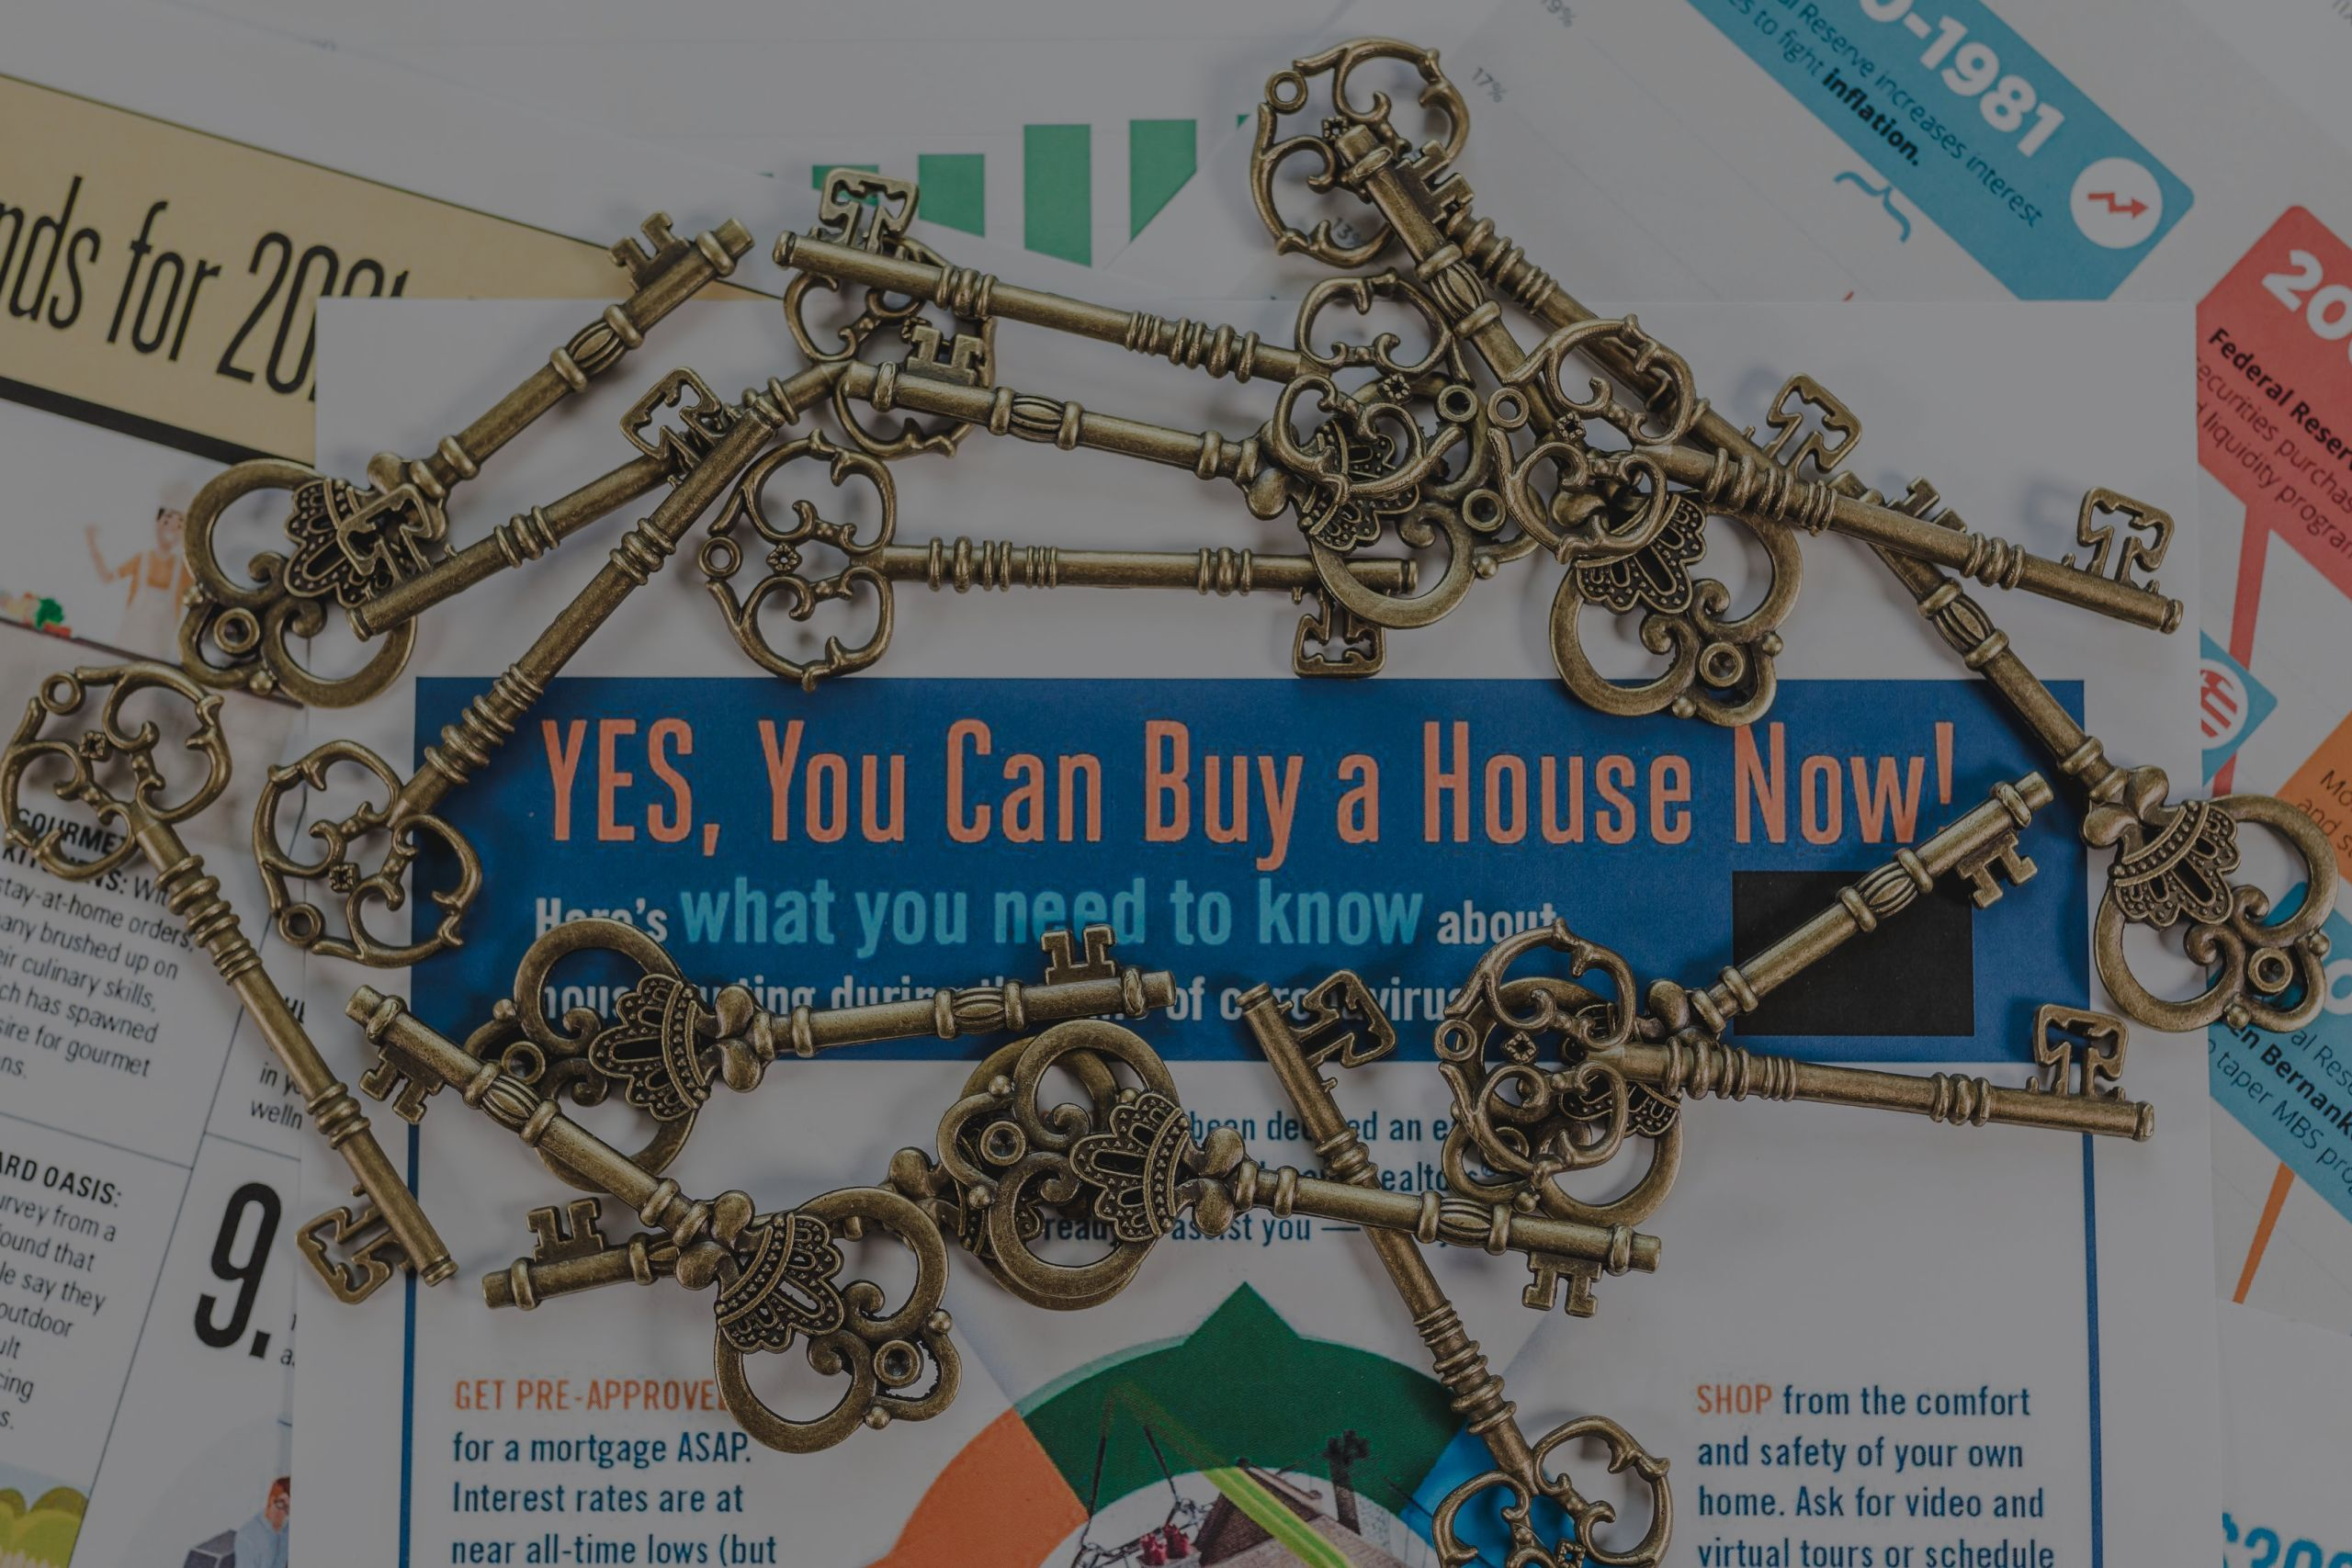 The Homebuyer's Journey: A Guide In 19 Steps